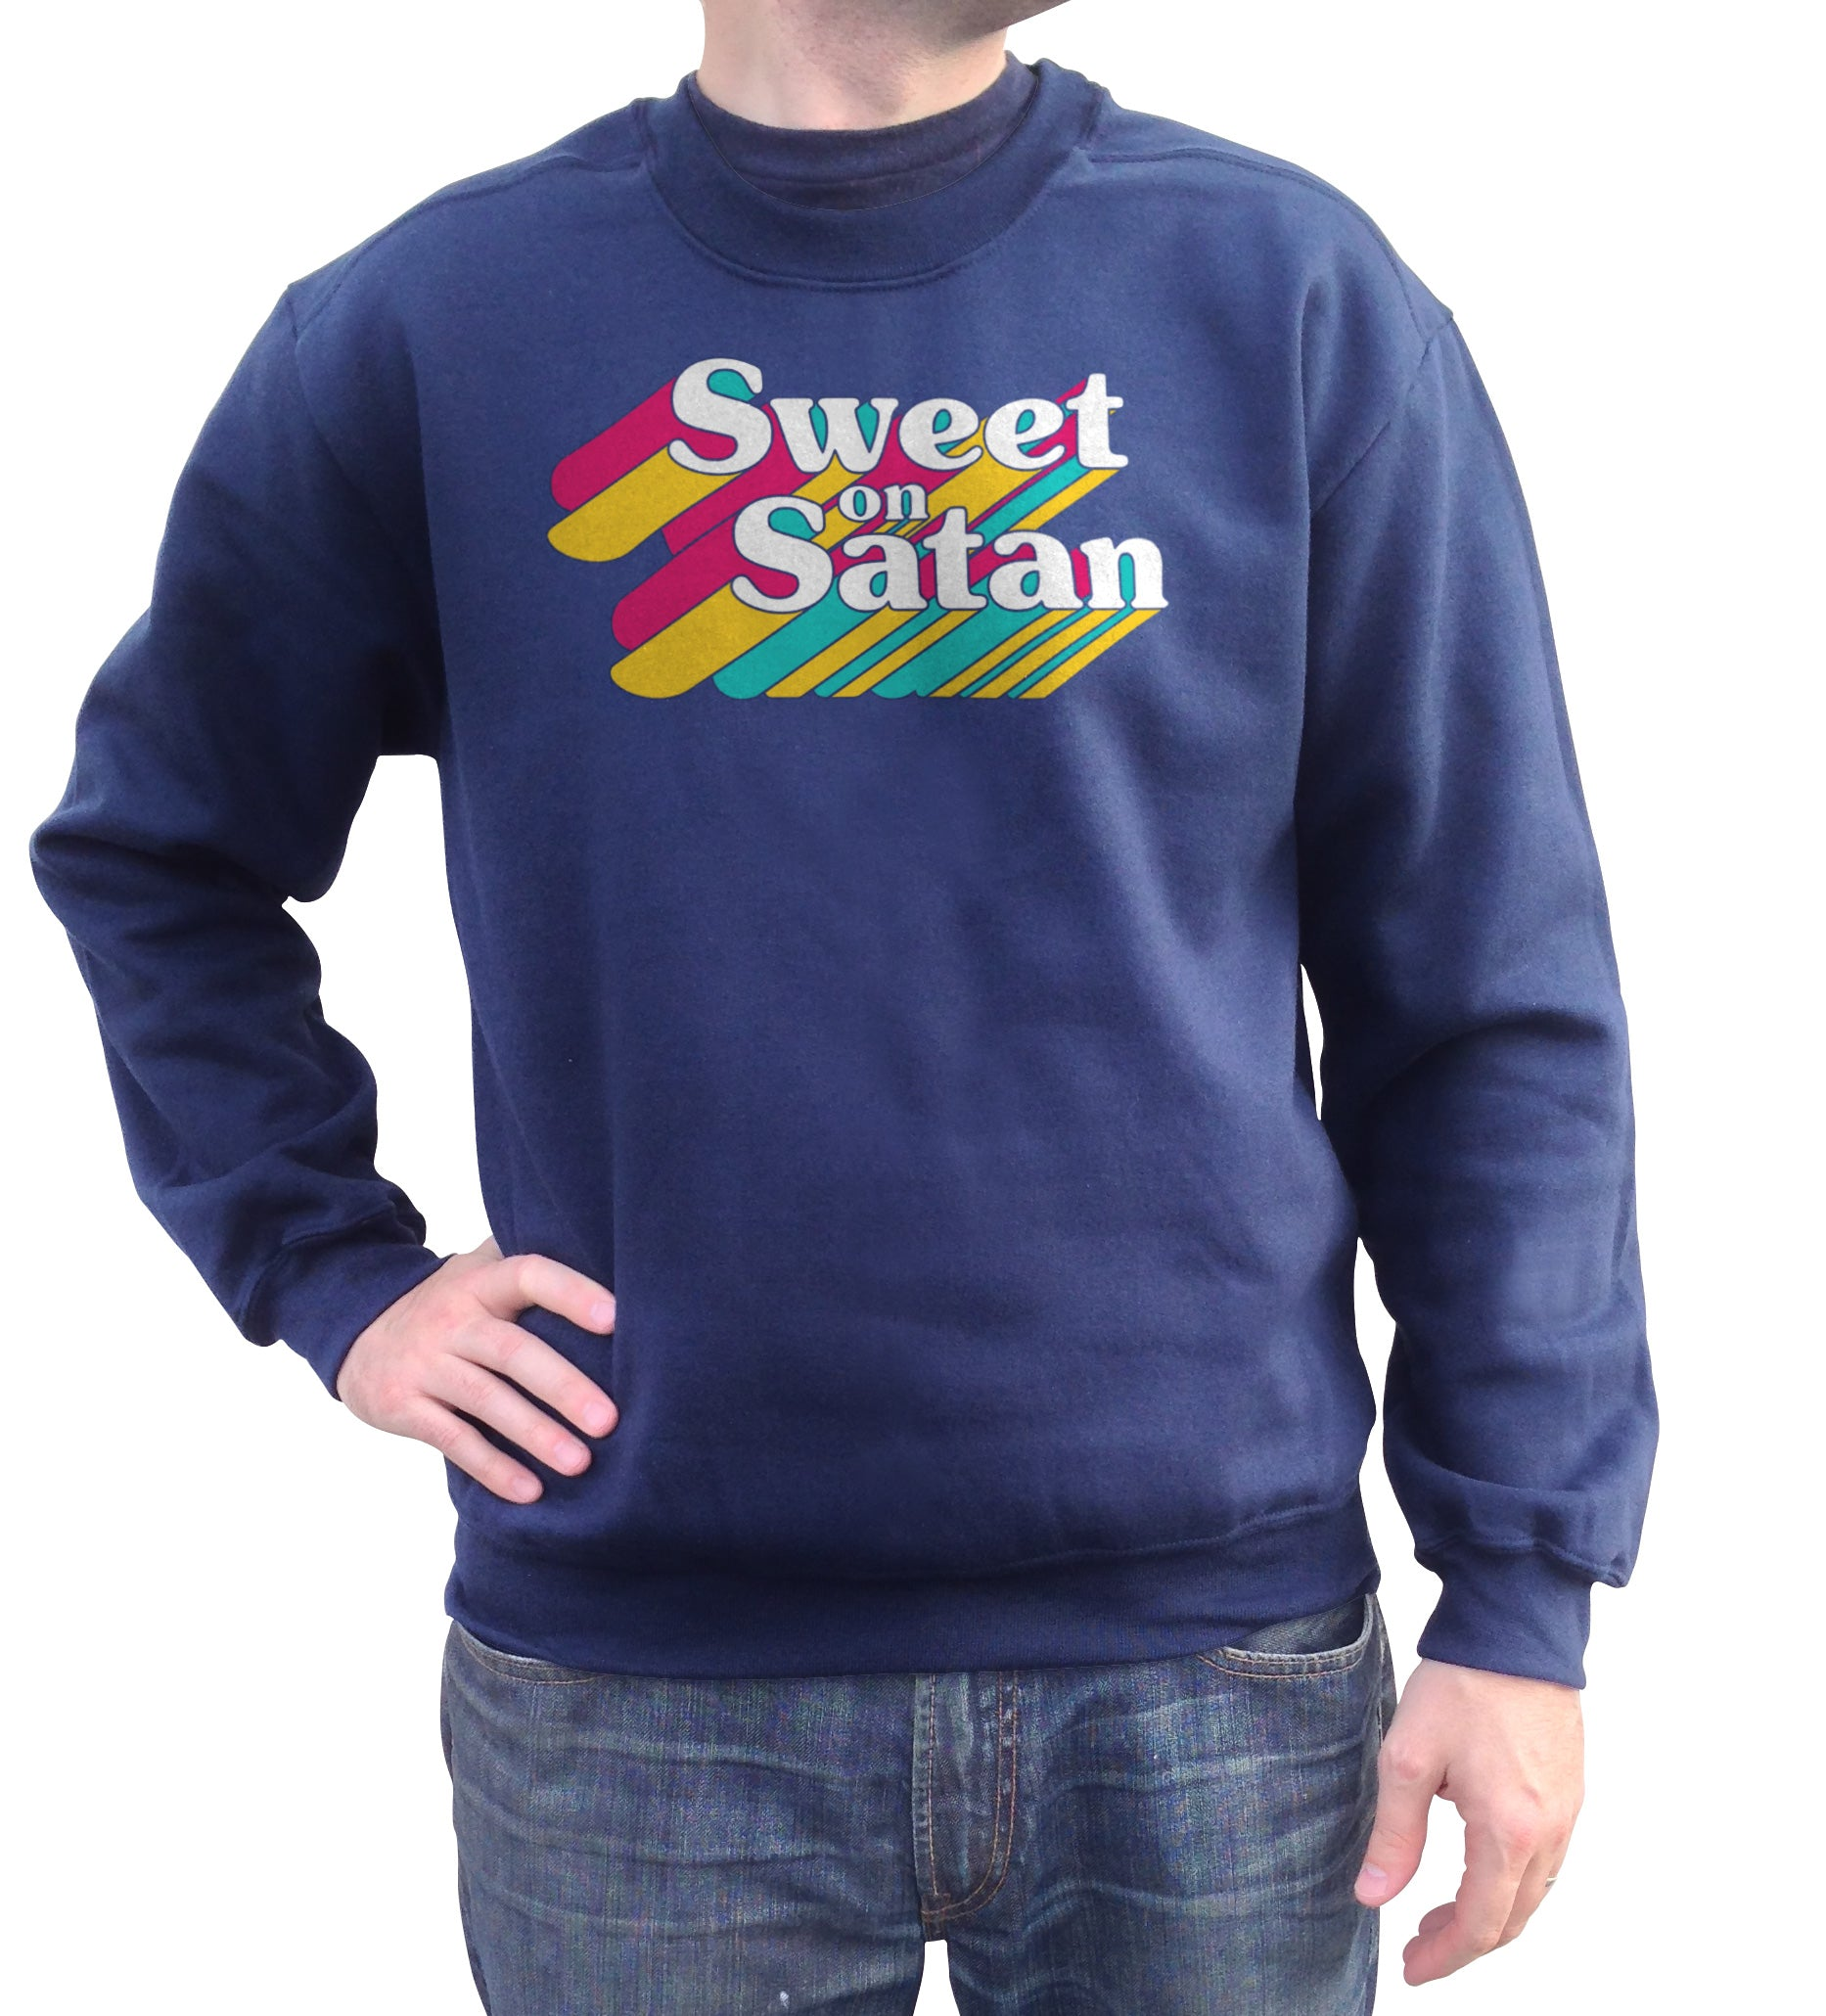 Unisex Sweet on Satan Sweatshirt